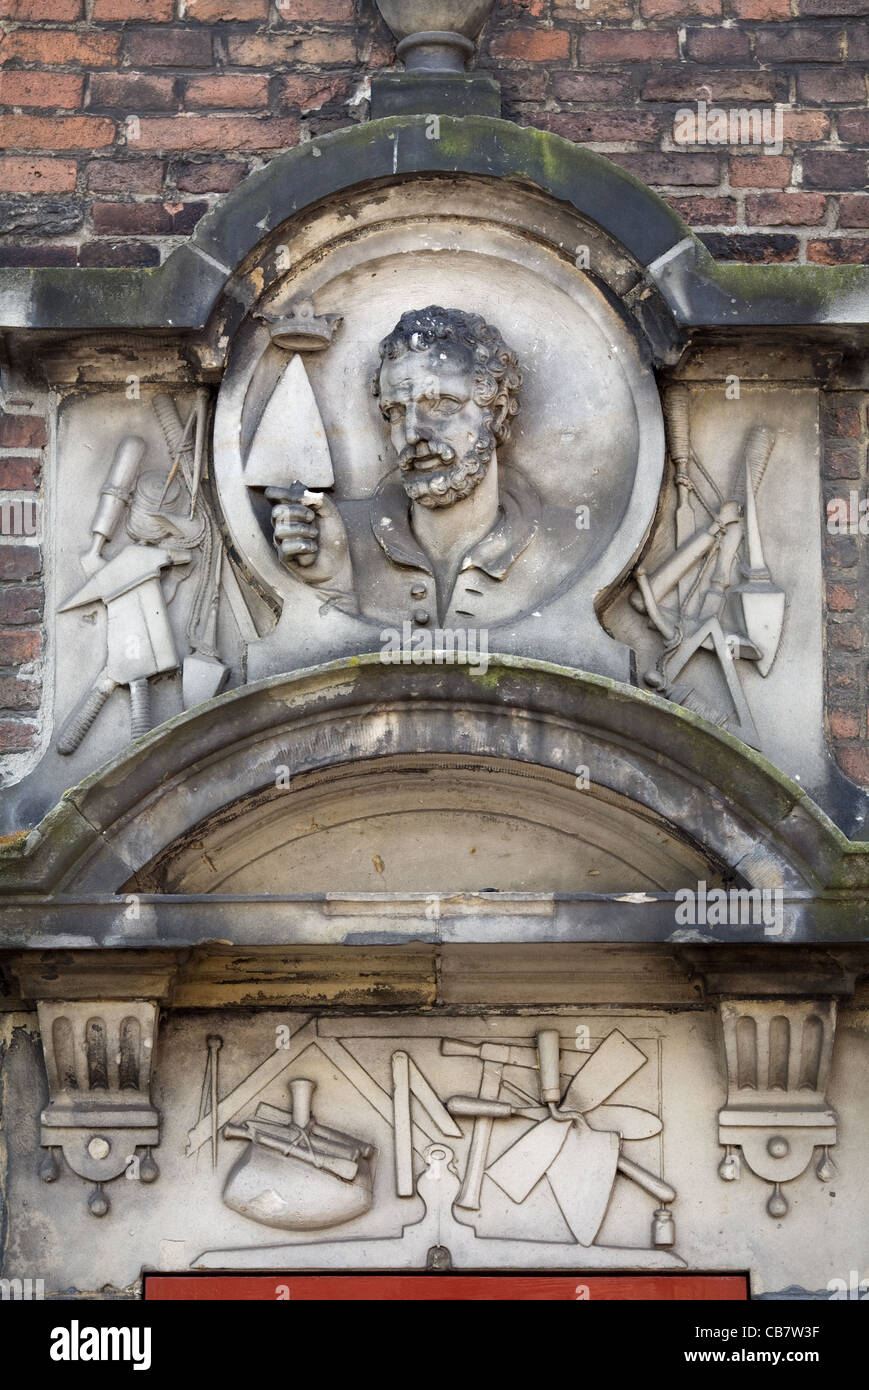 Mason imagery in a building timpani, Amsterdam, The Netherlands - Stock Image